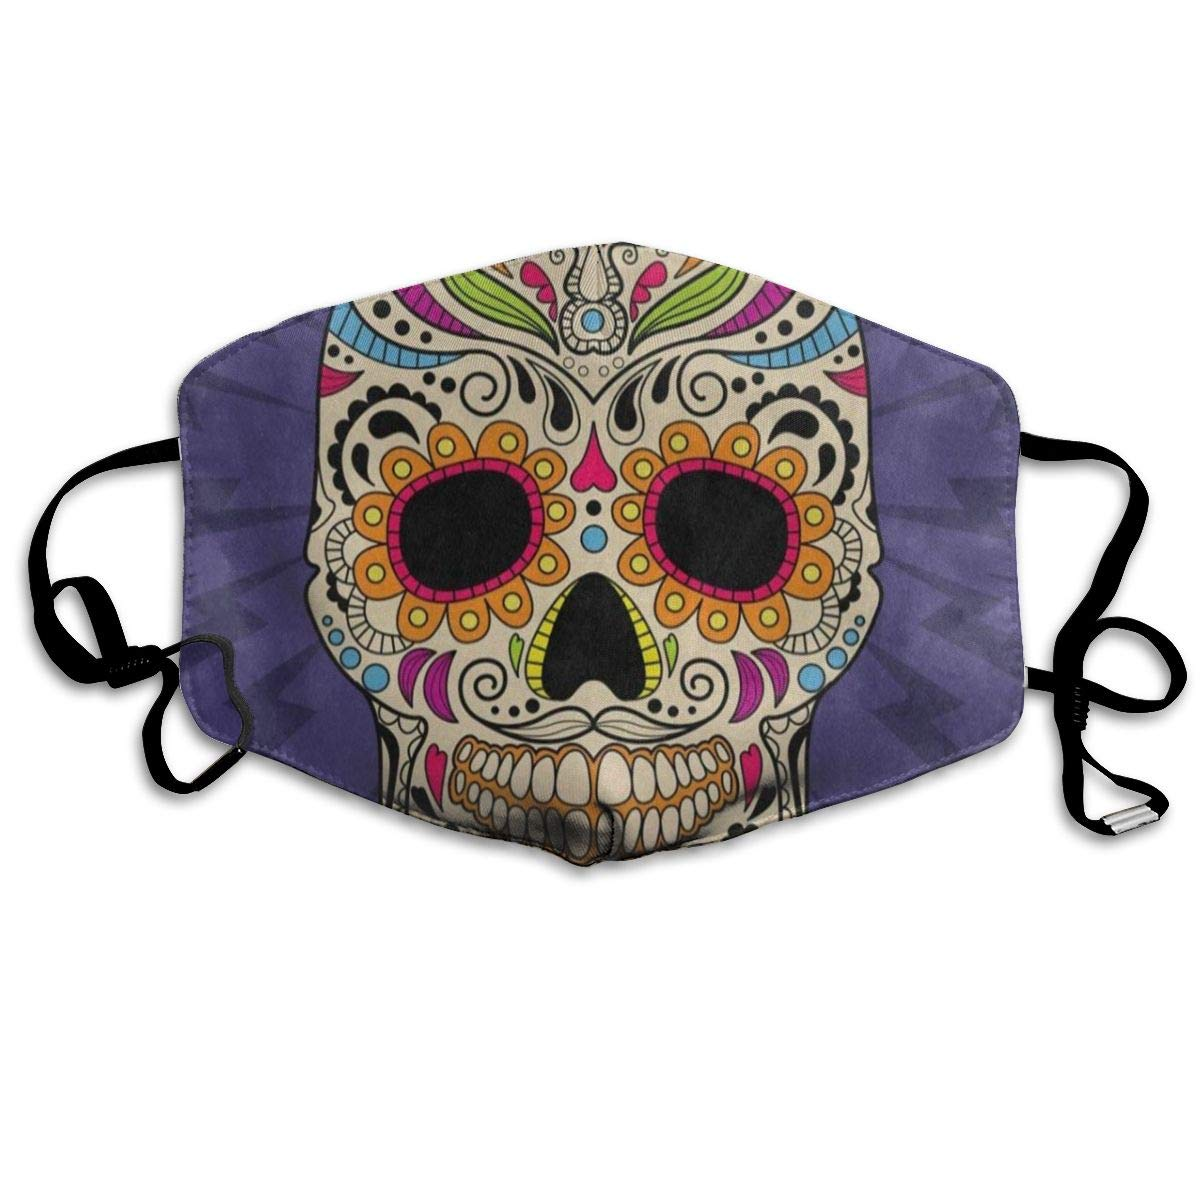 ZHOUSUN Dustproof Mexican Dia De Los Muertos Skull Flower Mouth Cover Mask Protective   Warm Windproof Mask